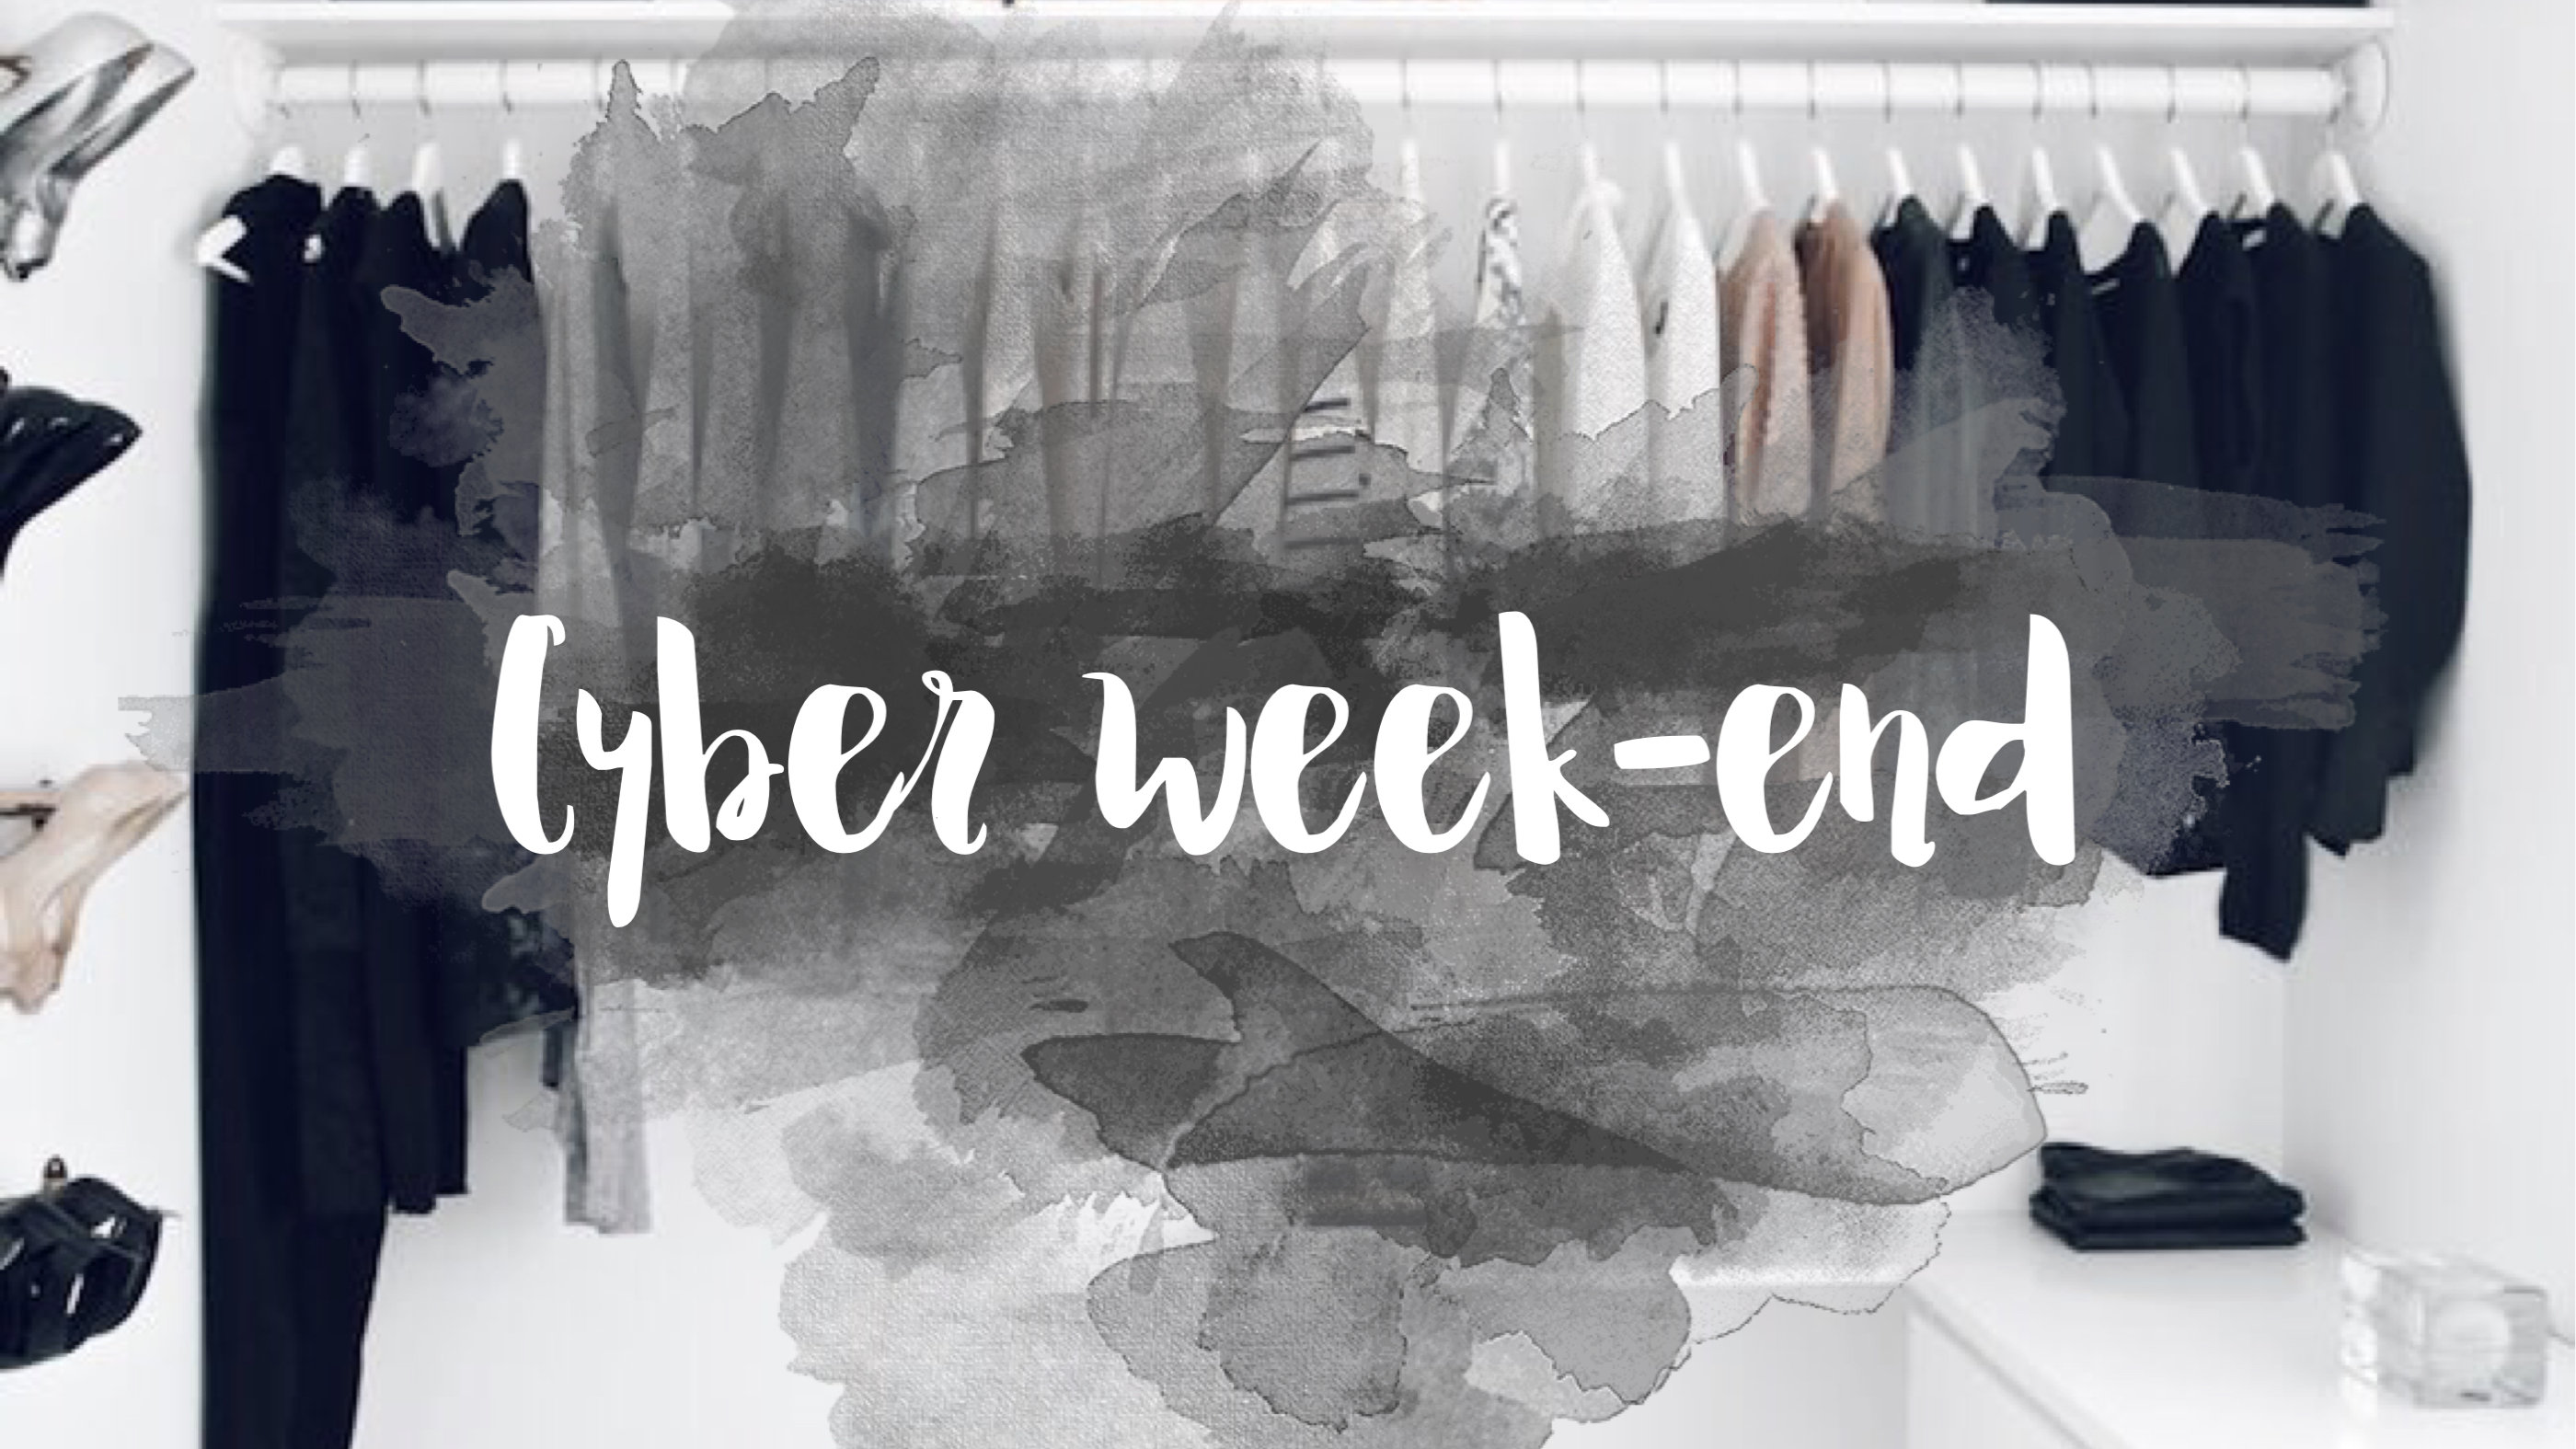 Sélection Cyber Week-End